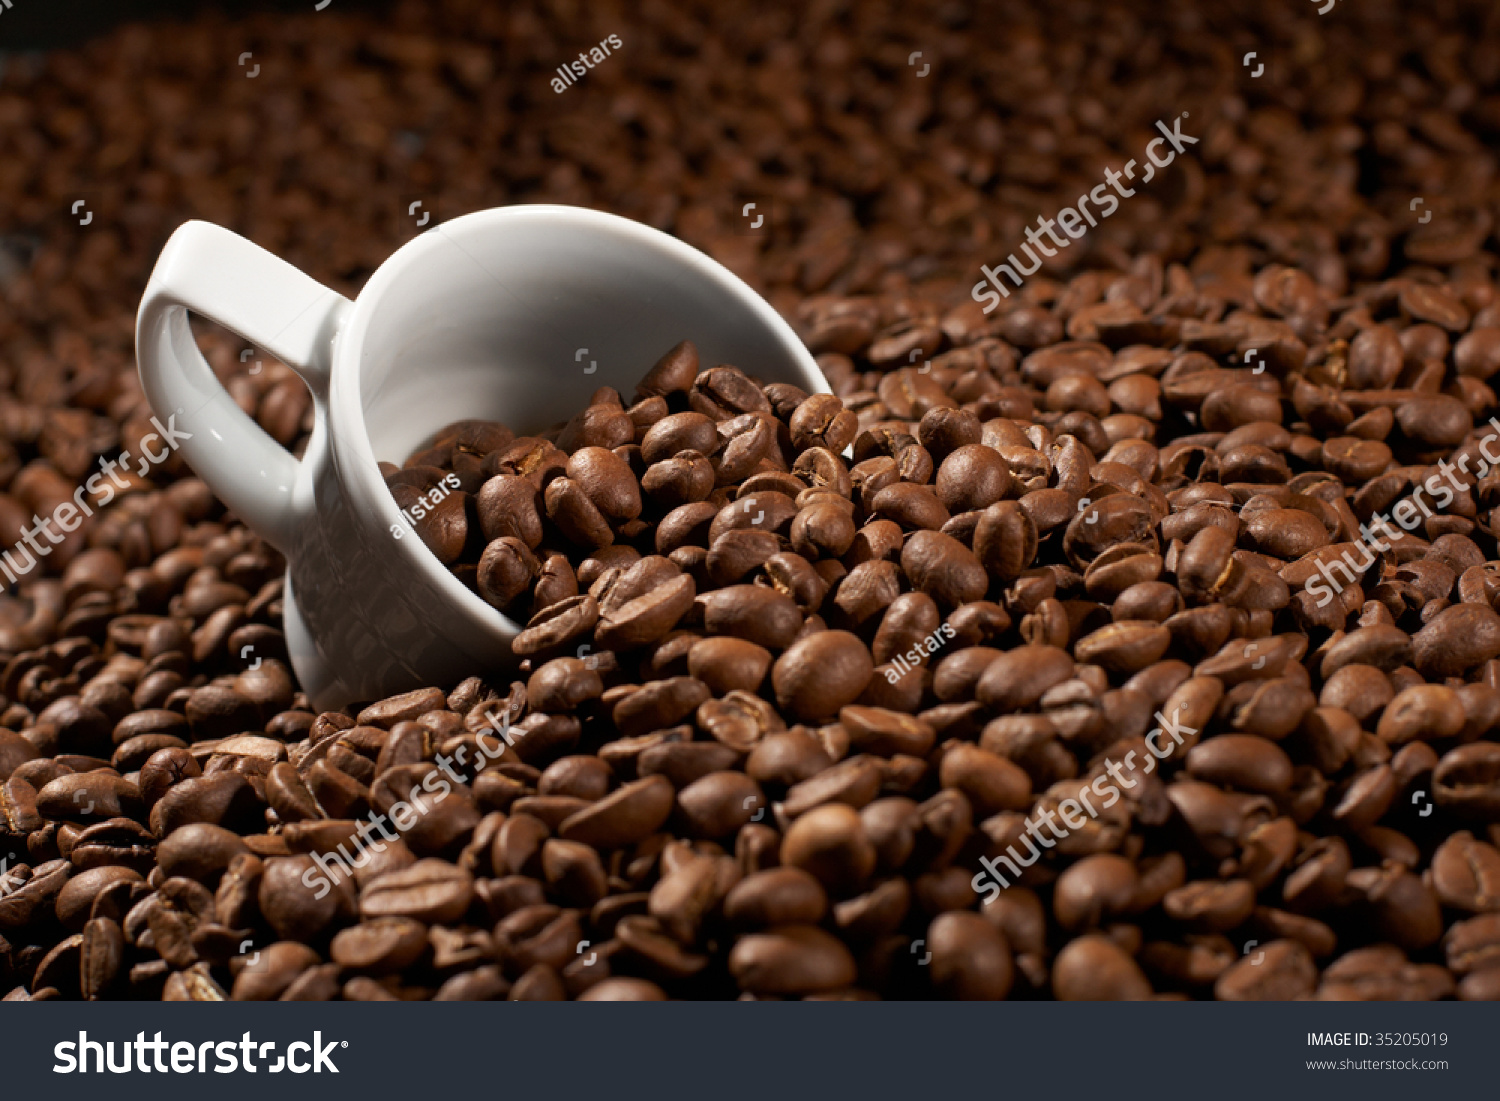 cup in a grain of coffee stock photo 35205019 shutterstock. Black Bedroom Furniture Sets. Home Design Ideas